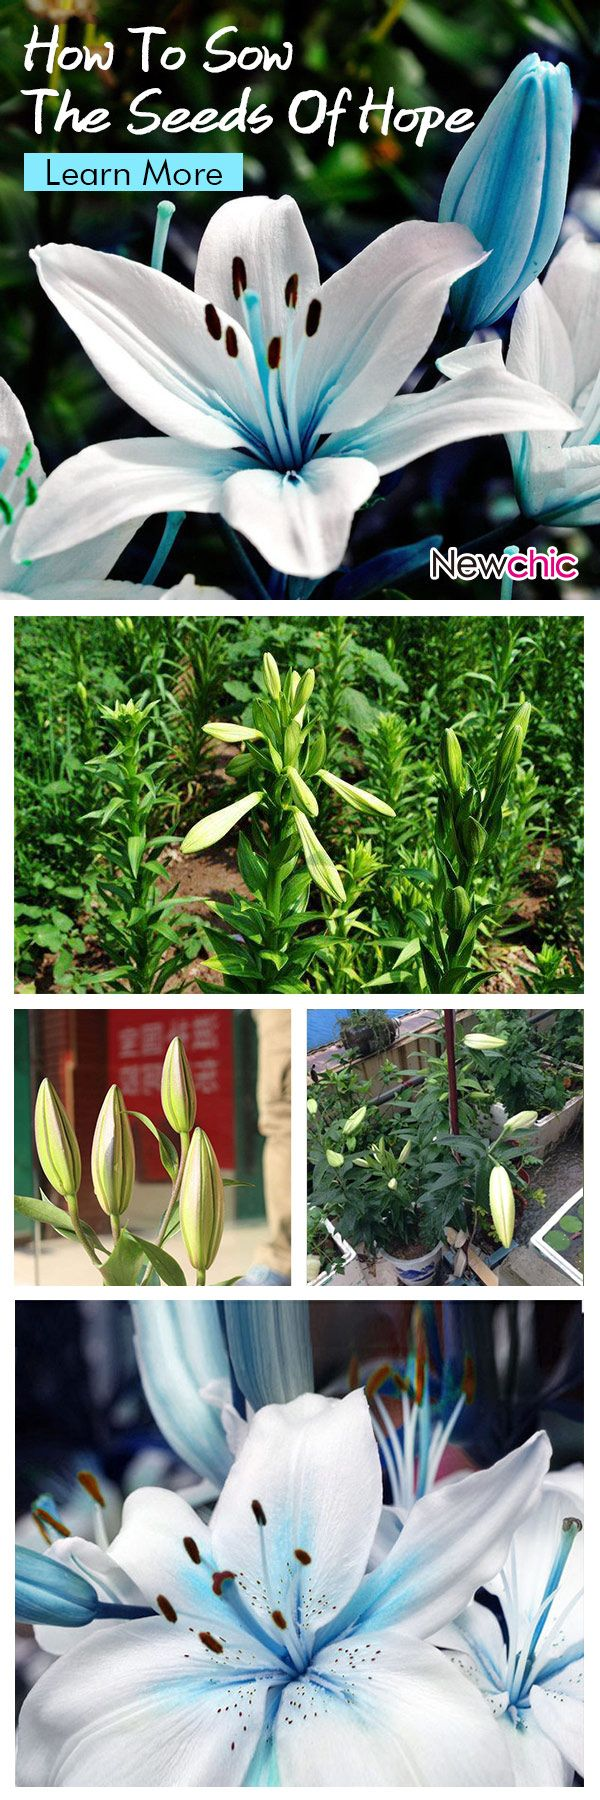 What  to grow  in the garden ?--50Pcs Blue Heart Lily Seeds Potted Plant Bonsai Lily Flower Seeds For Home Garden#newchic#garden#flowers#spring